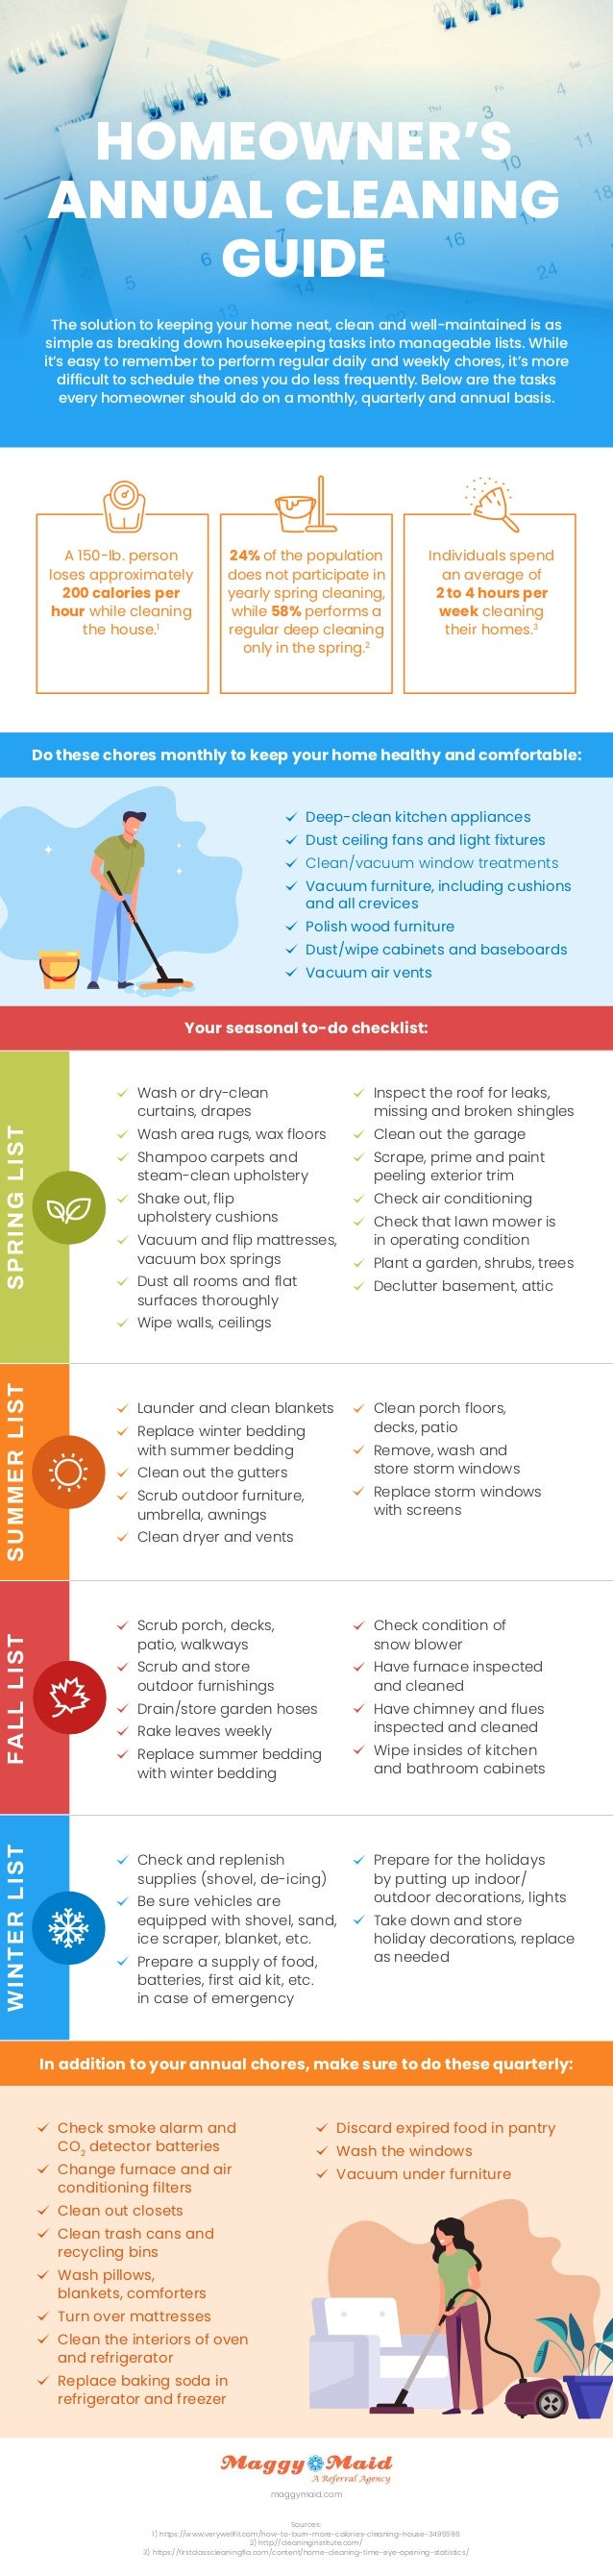 homeowners-annual-cleaning-guide